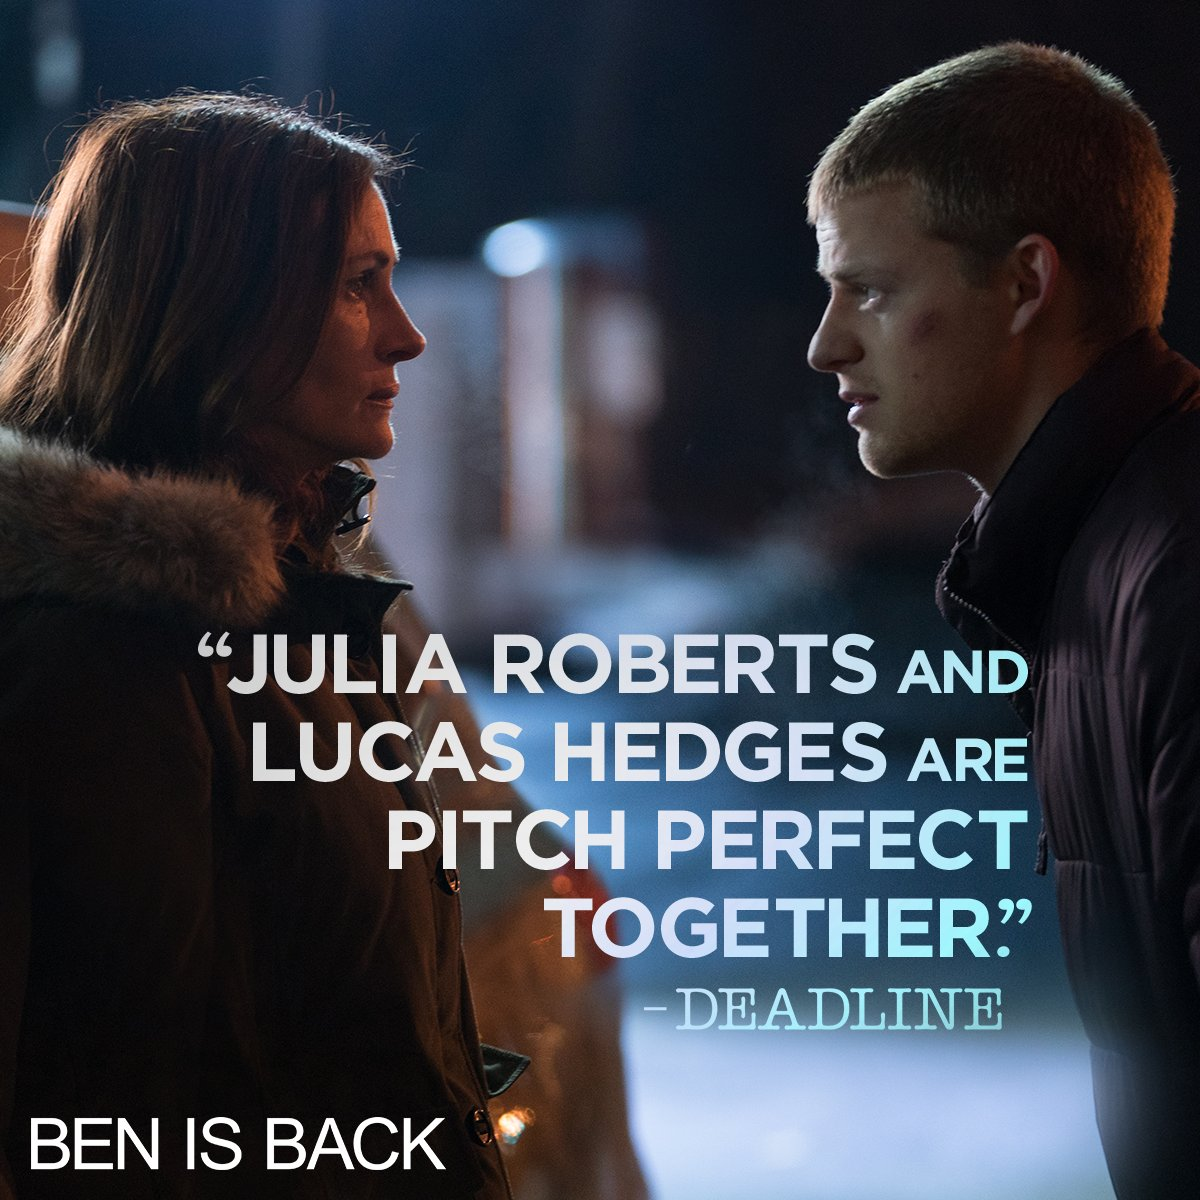 #JuliaRoberts and #LucasHedges star in #BenIsBack. Now playing. Get tickets: http://bit.ly/BenIsBackTickets…